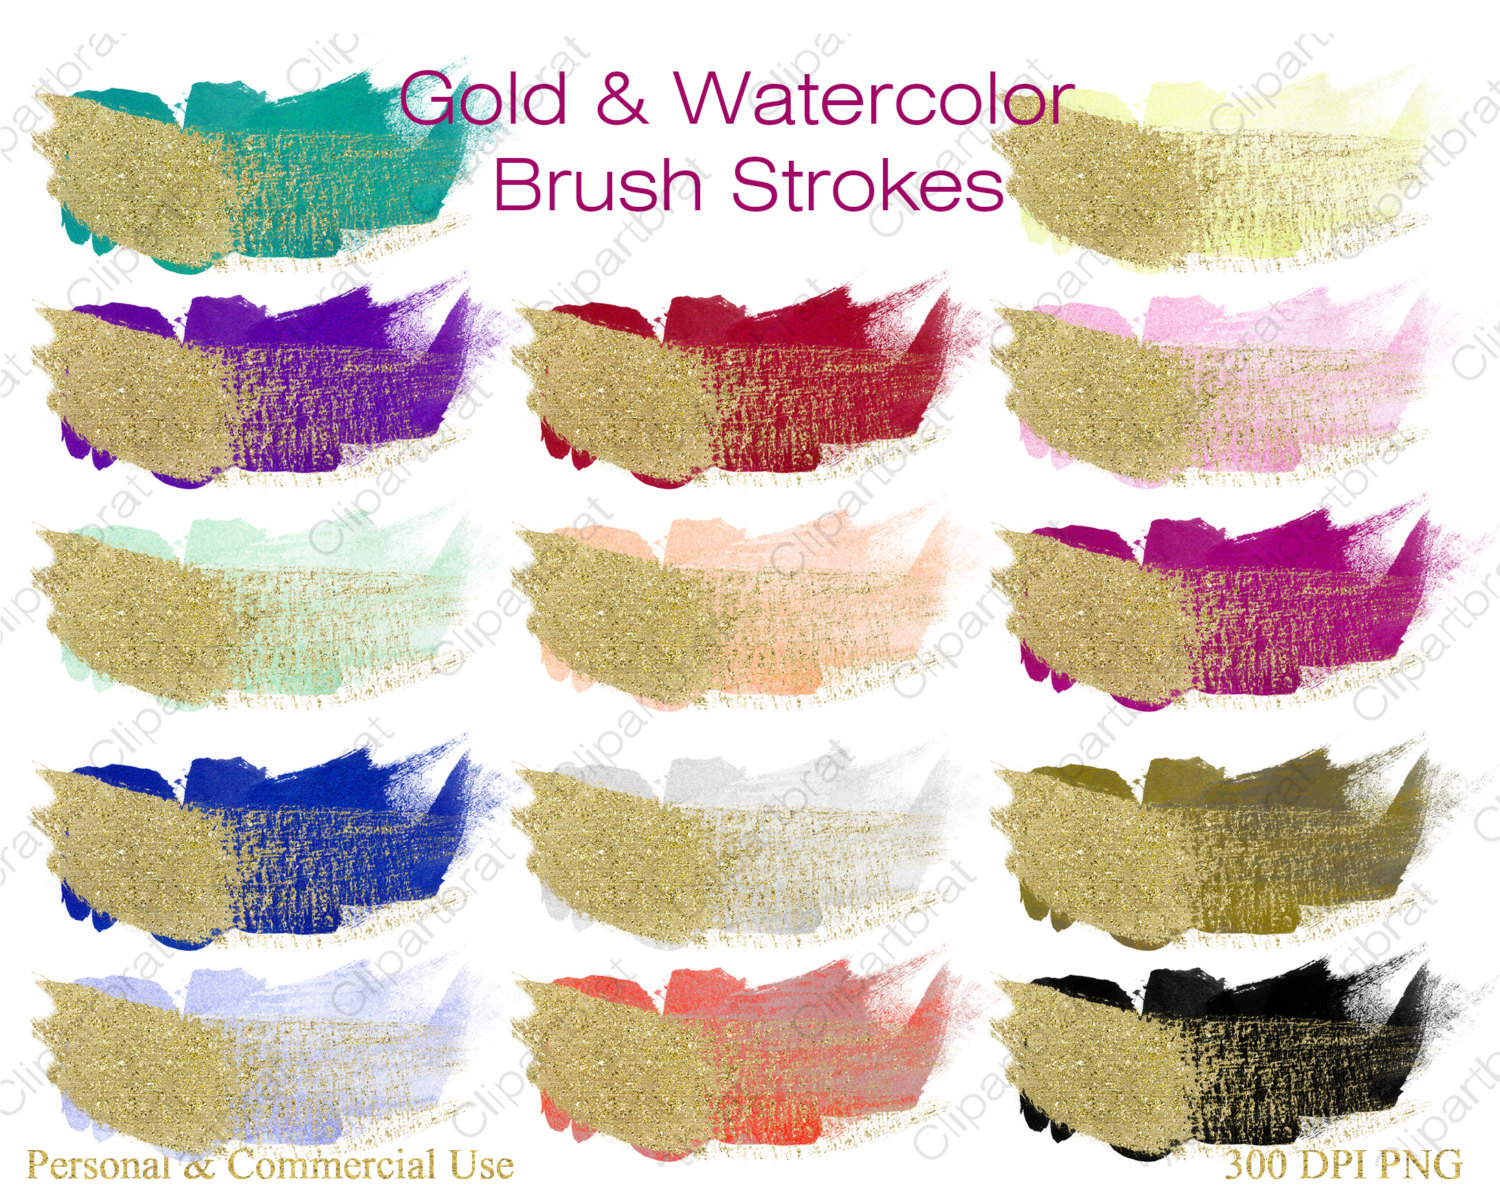 GOLD BRUSH STROKES Clipart Commercial Use Clipart 14 Watercolor.